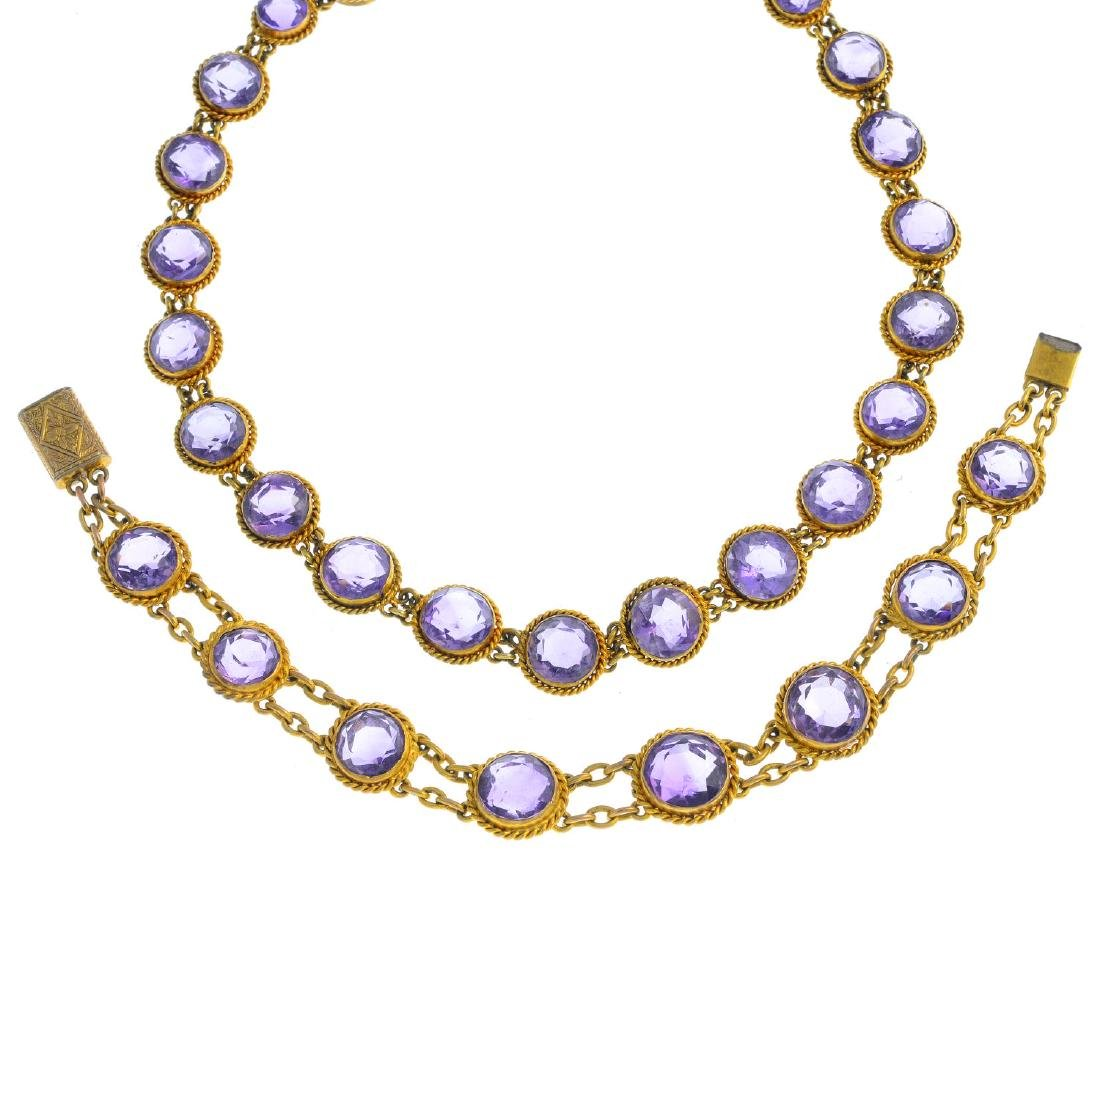 An amethyst necklace and bracelet and spare links. The